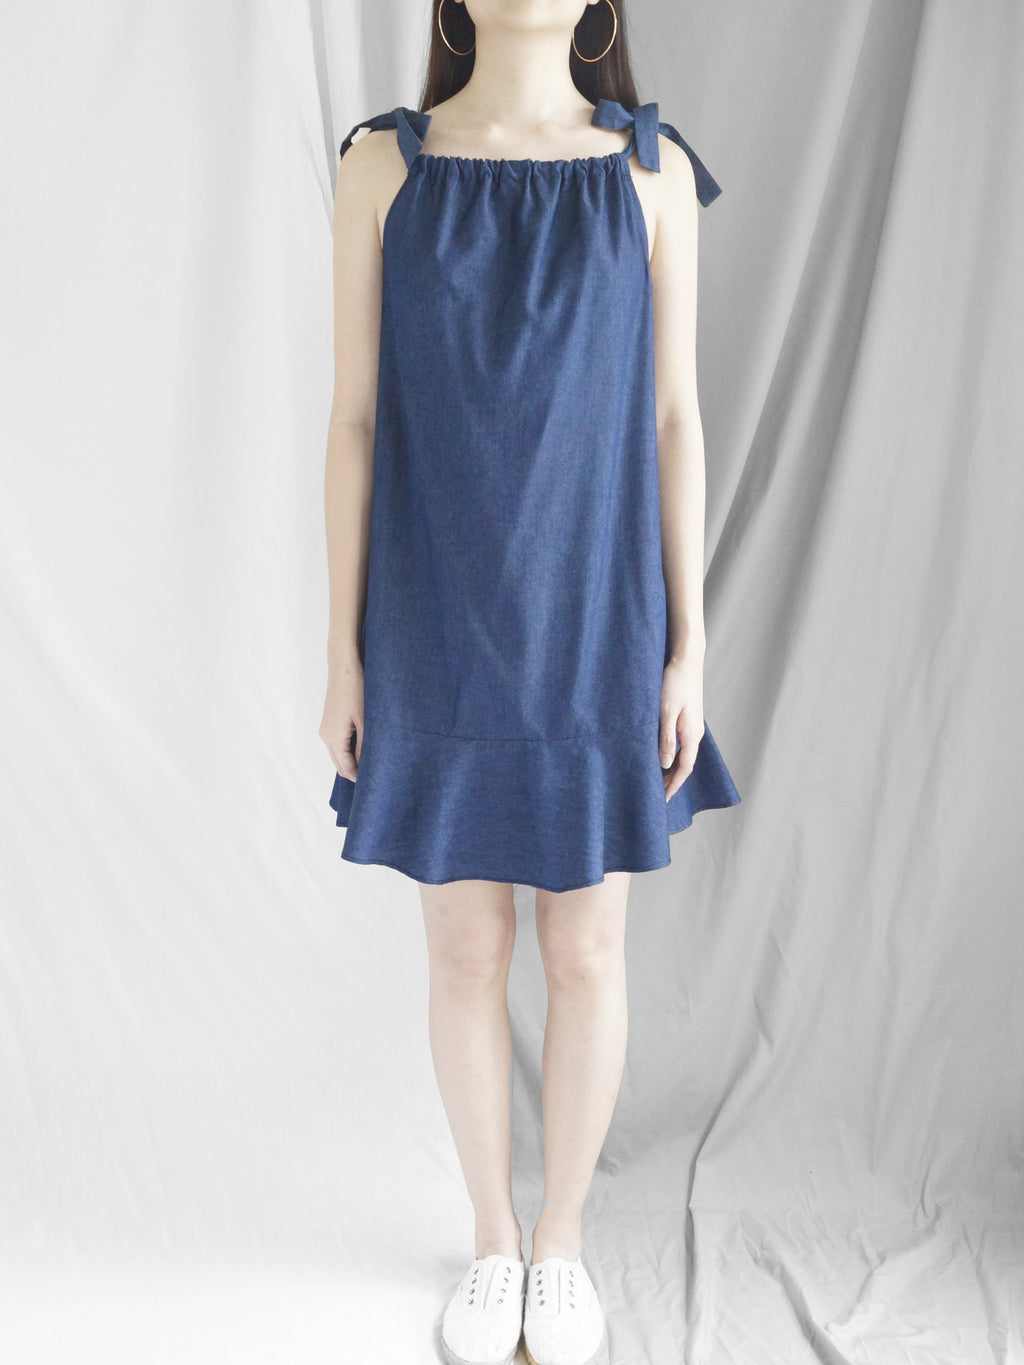 Lulu Ribbon Dress - Dark Denim